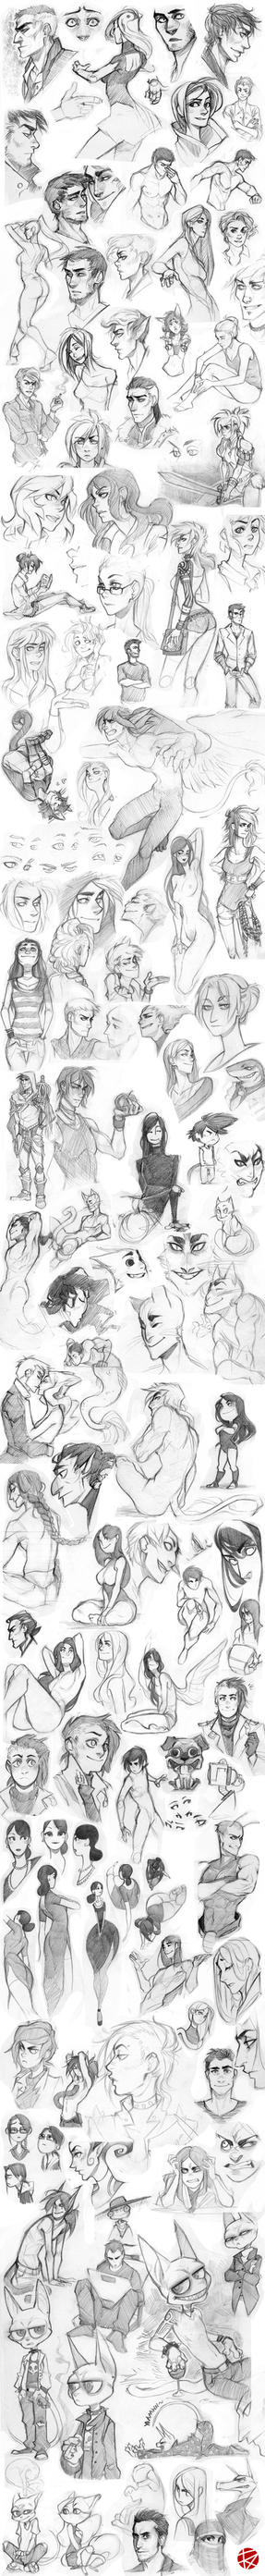 Sketch dump 01 by GoldenTar